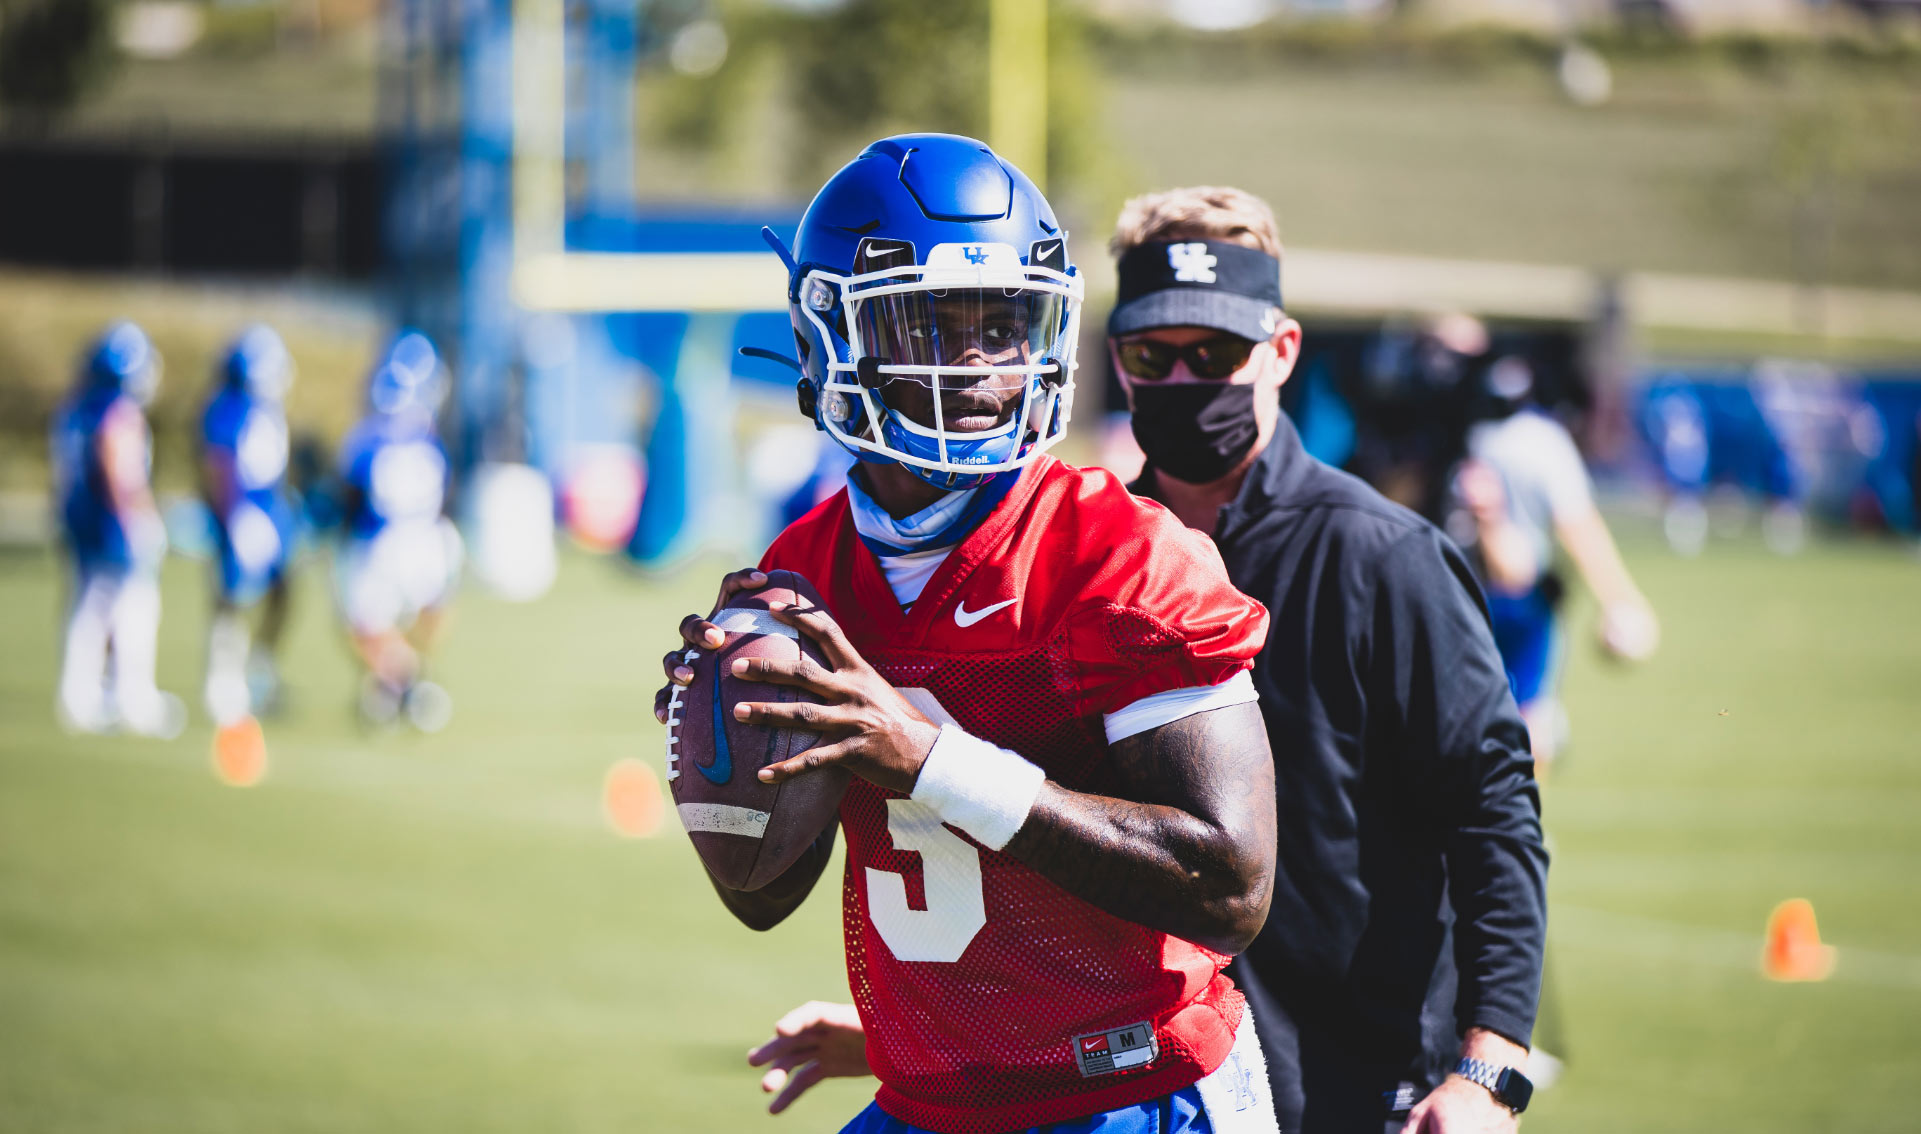 Terry, dressed in practice gear and in a red jersey to signify him as the quarterback, during a practice with a coach and fellow teammates in the background behind him.